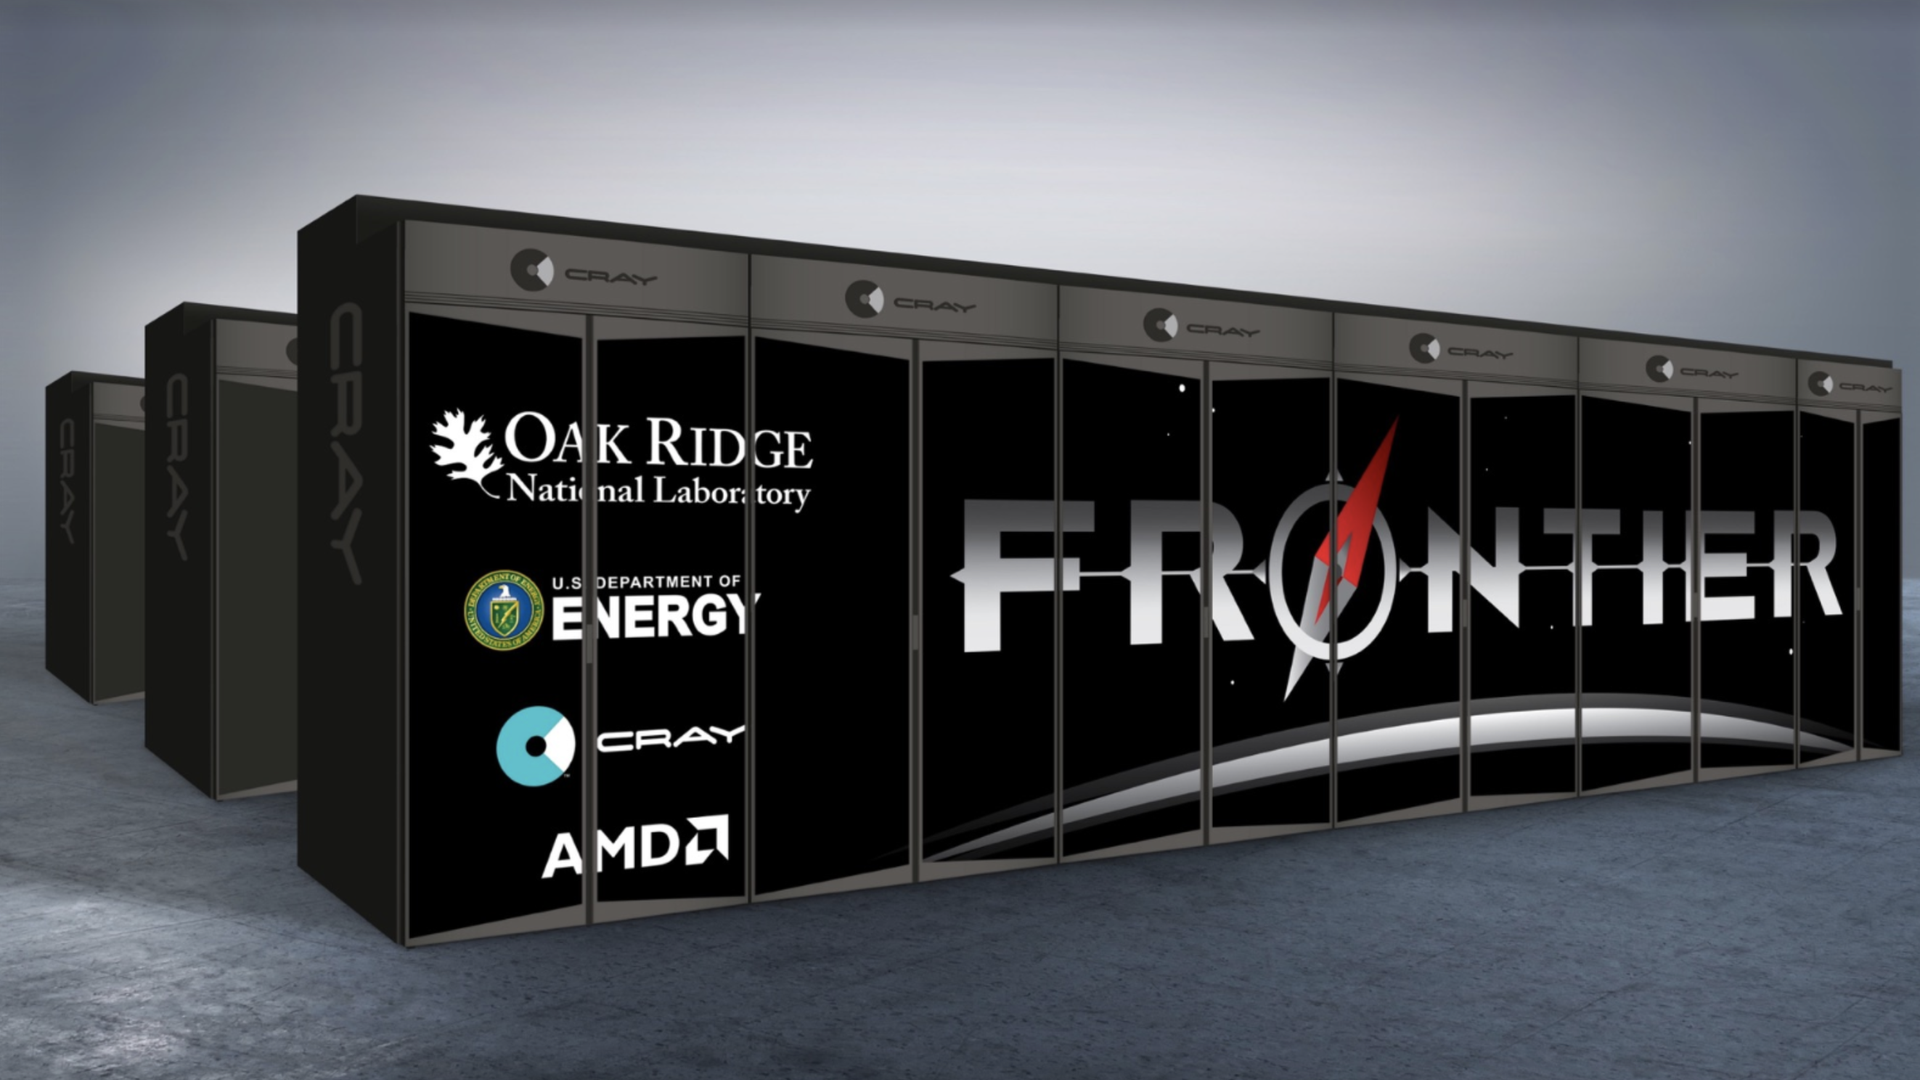 A rendering of the Frontier supercomputer being built for the US Department of Energy